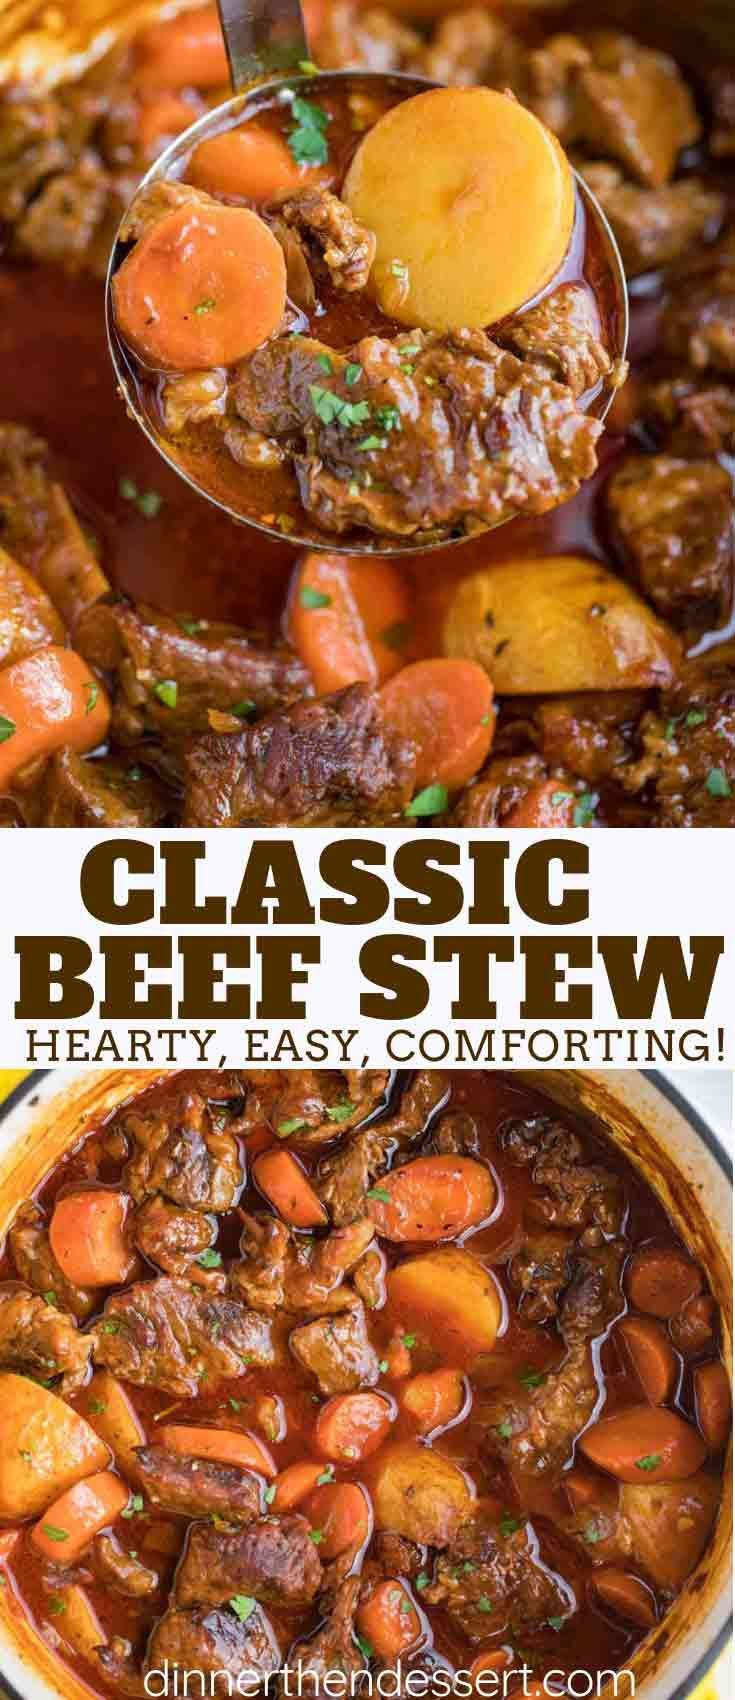 Classic Beef Stew Is A One Pot Comforting And Hearty Made With Beef Vegetables Tomato Paste And Season Beef Stew Recipe Stew Meat Recipes Classic Beef Stew